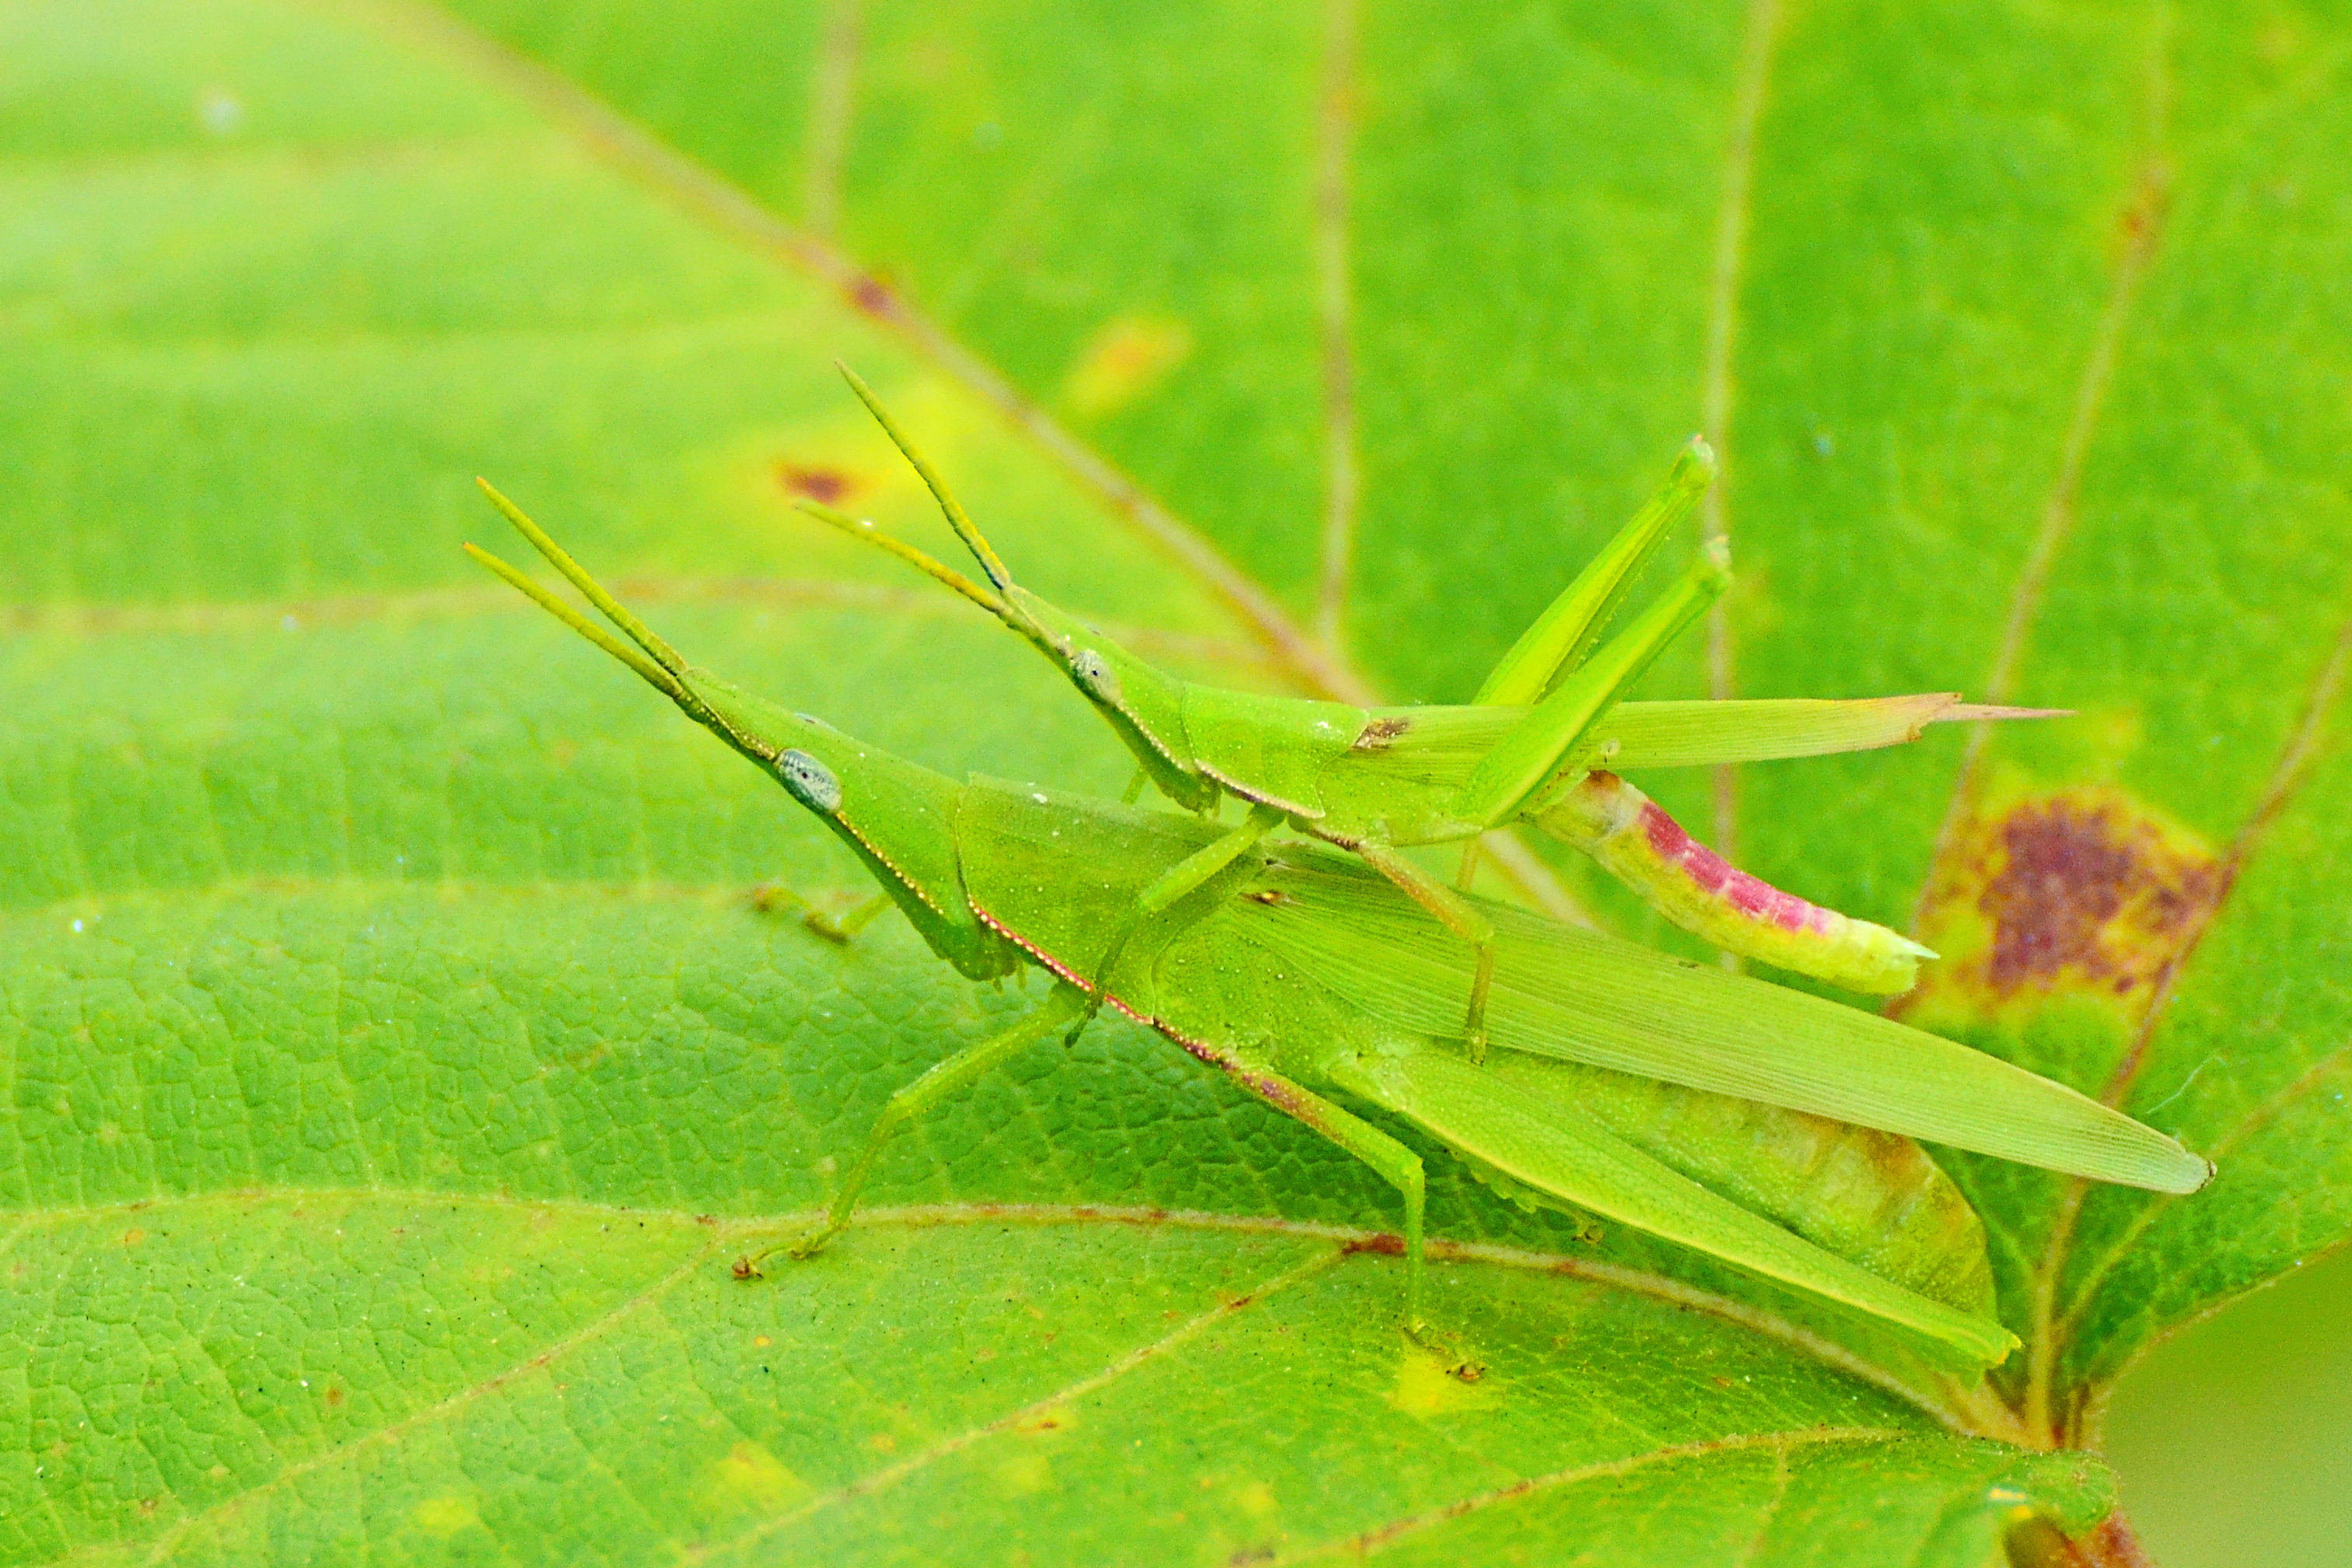 Smaller Longheaded Locust on Leaf / オンブバッタ